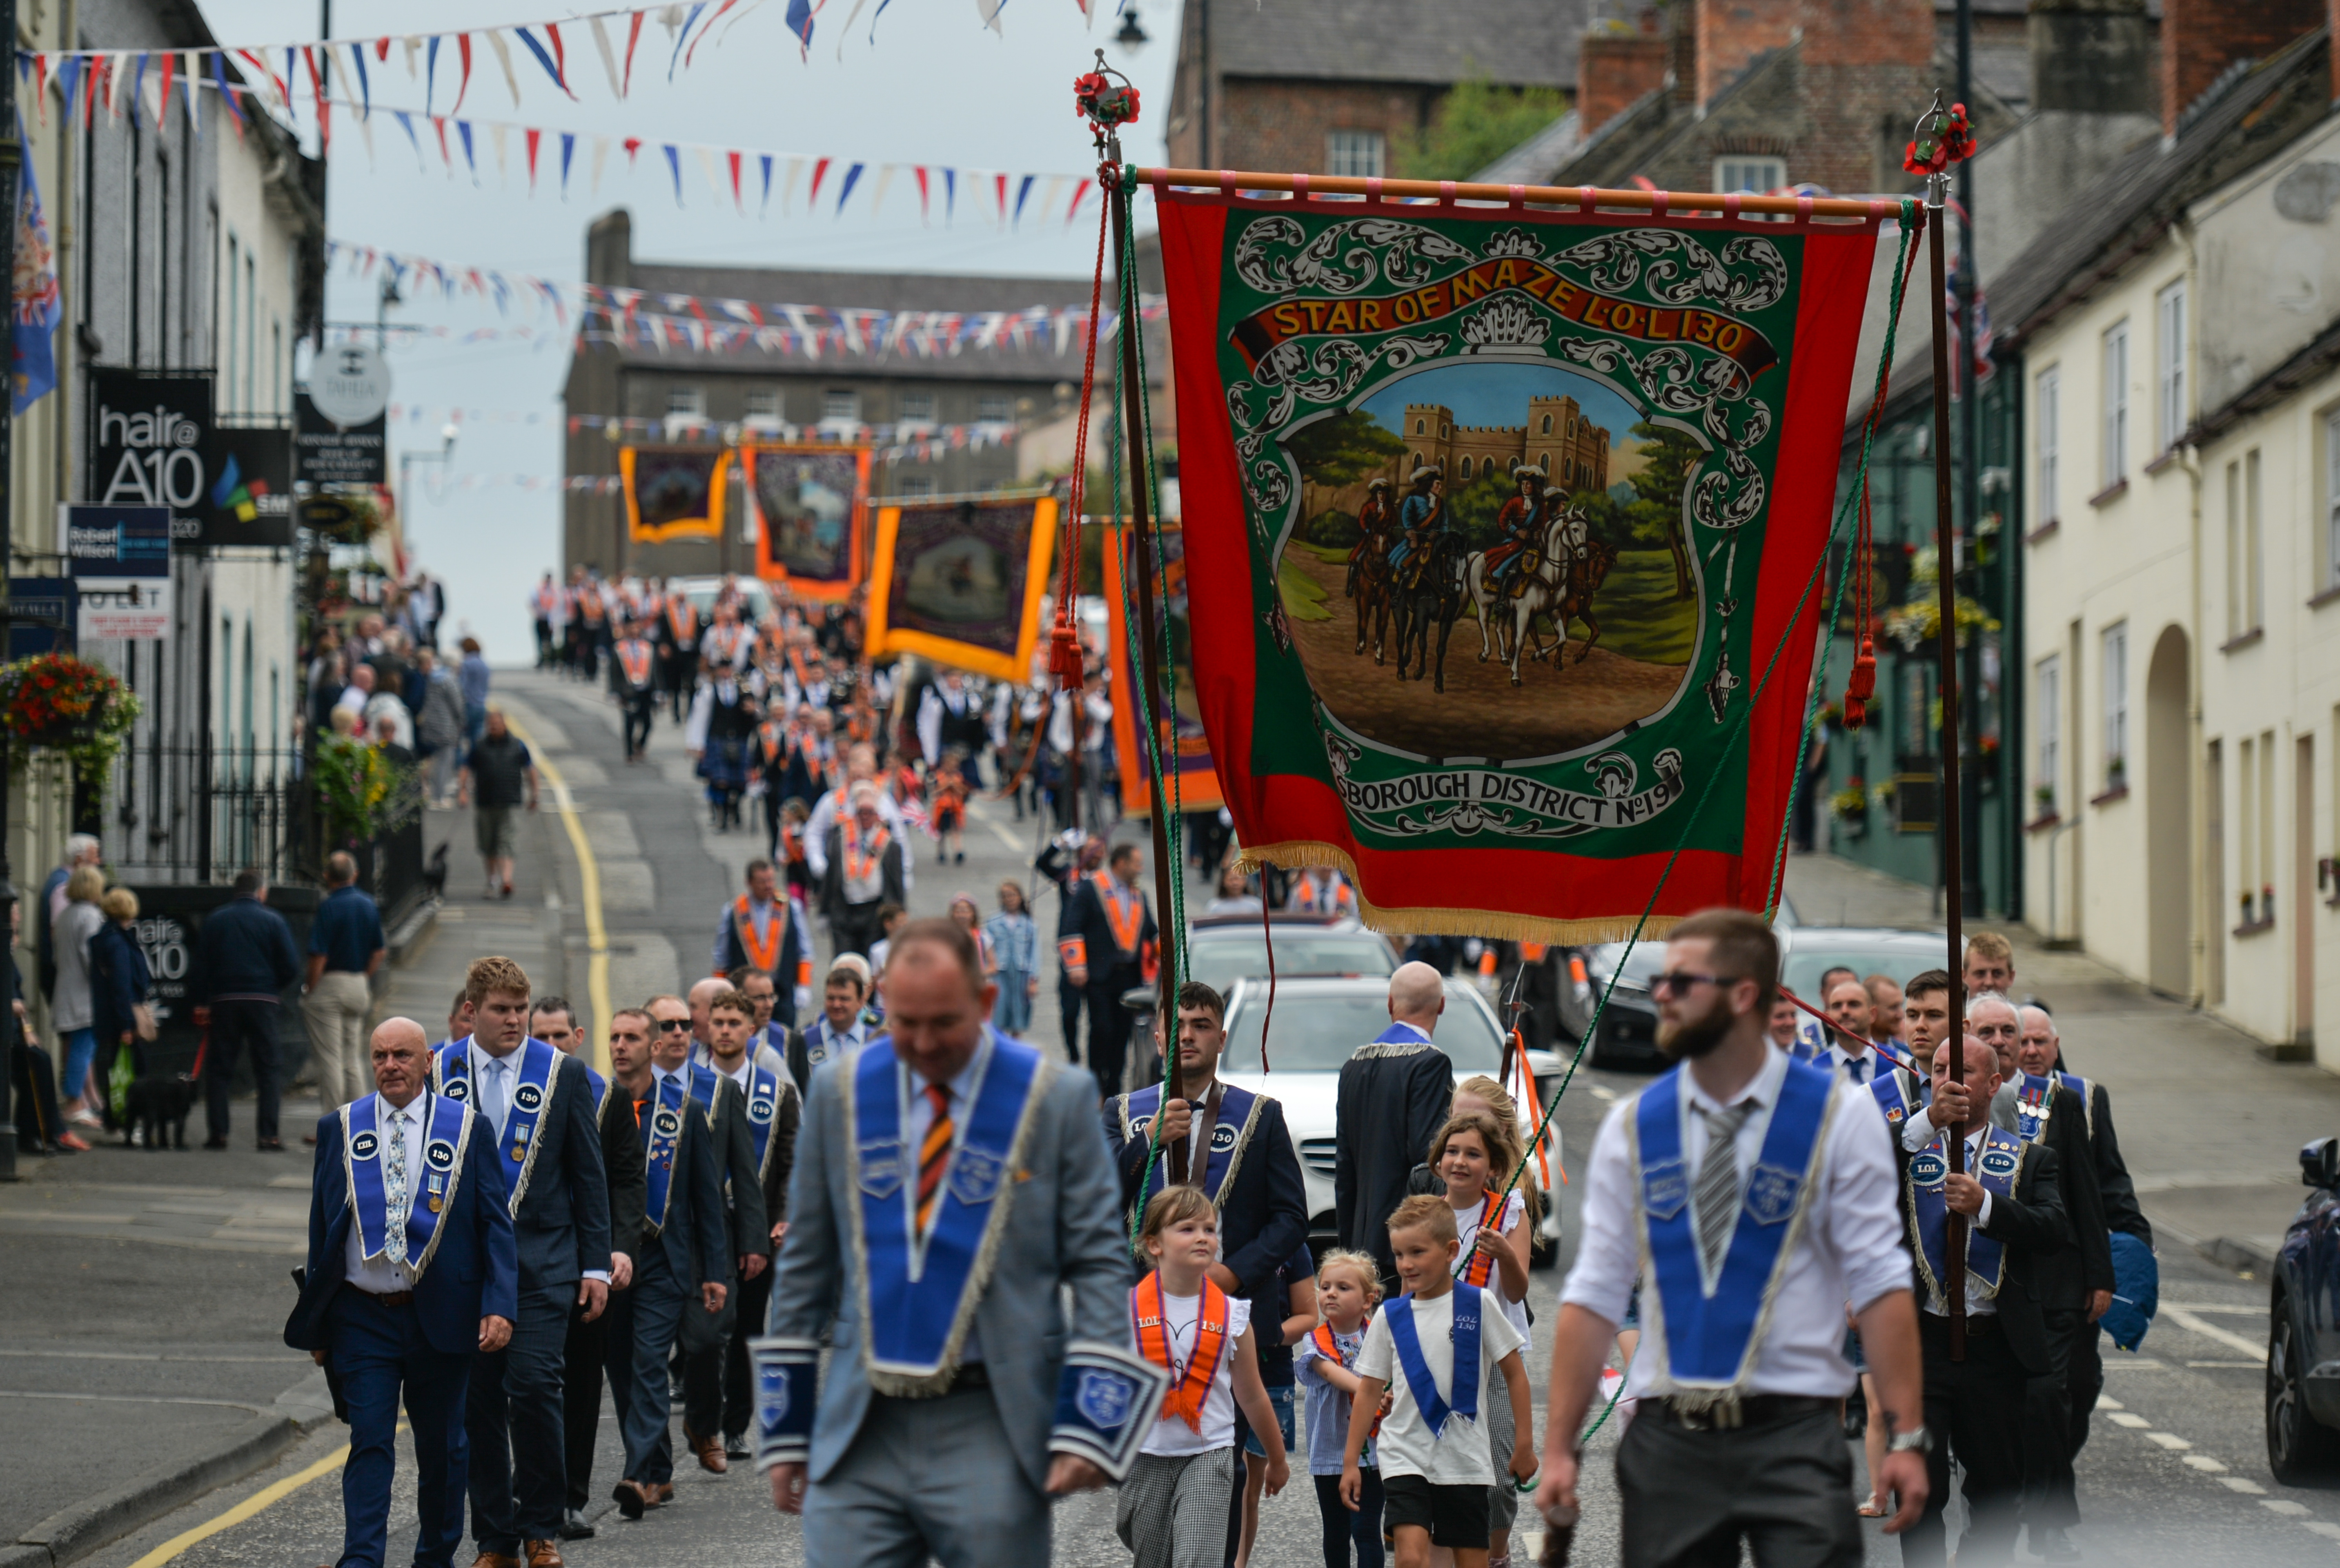 <p>Members of the Orange Order and their supporters take part in the Twelfth of July parade in Hillsborough village as part of the celebrations which marks the victory of King William of Orange over the catholic King James at the Battle of the Boyne in 1690.  On Sunday, 12 July 2021, in Hillsborough, County Down,  Northern Ireland (Photo by Artur Widak/NurPhoto via Getty Images)</p>